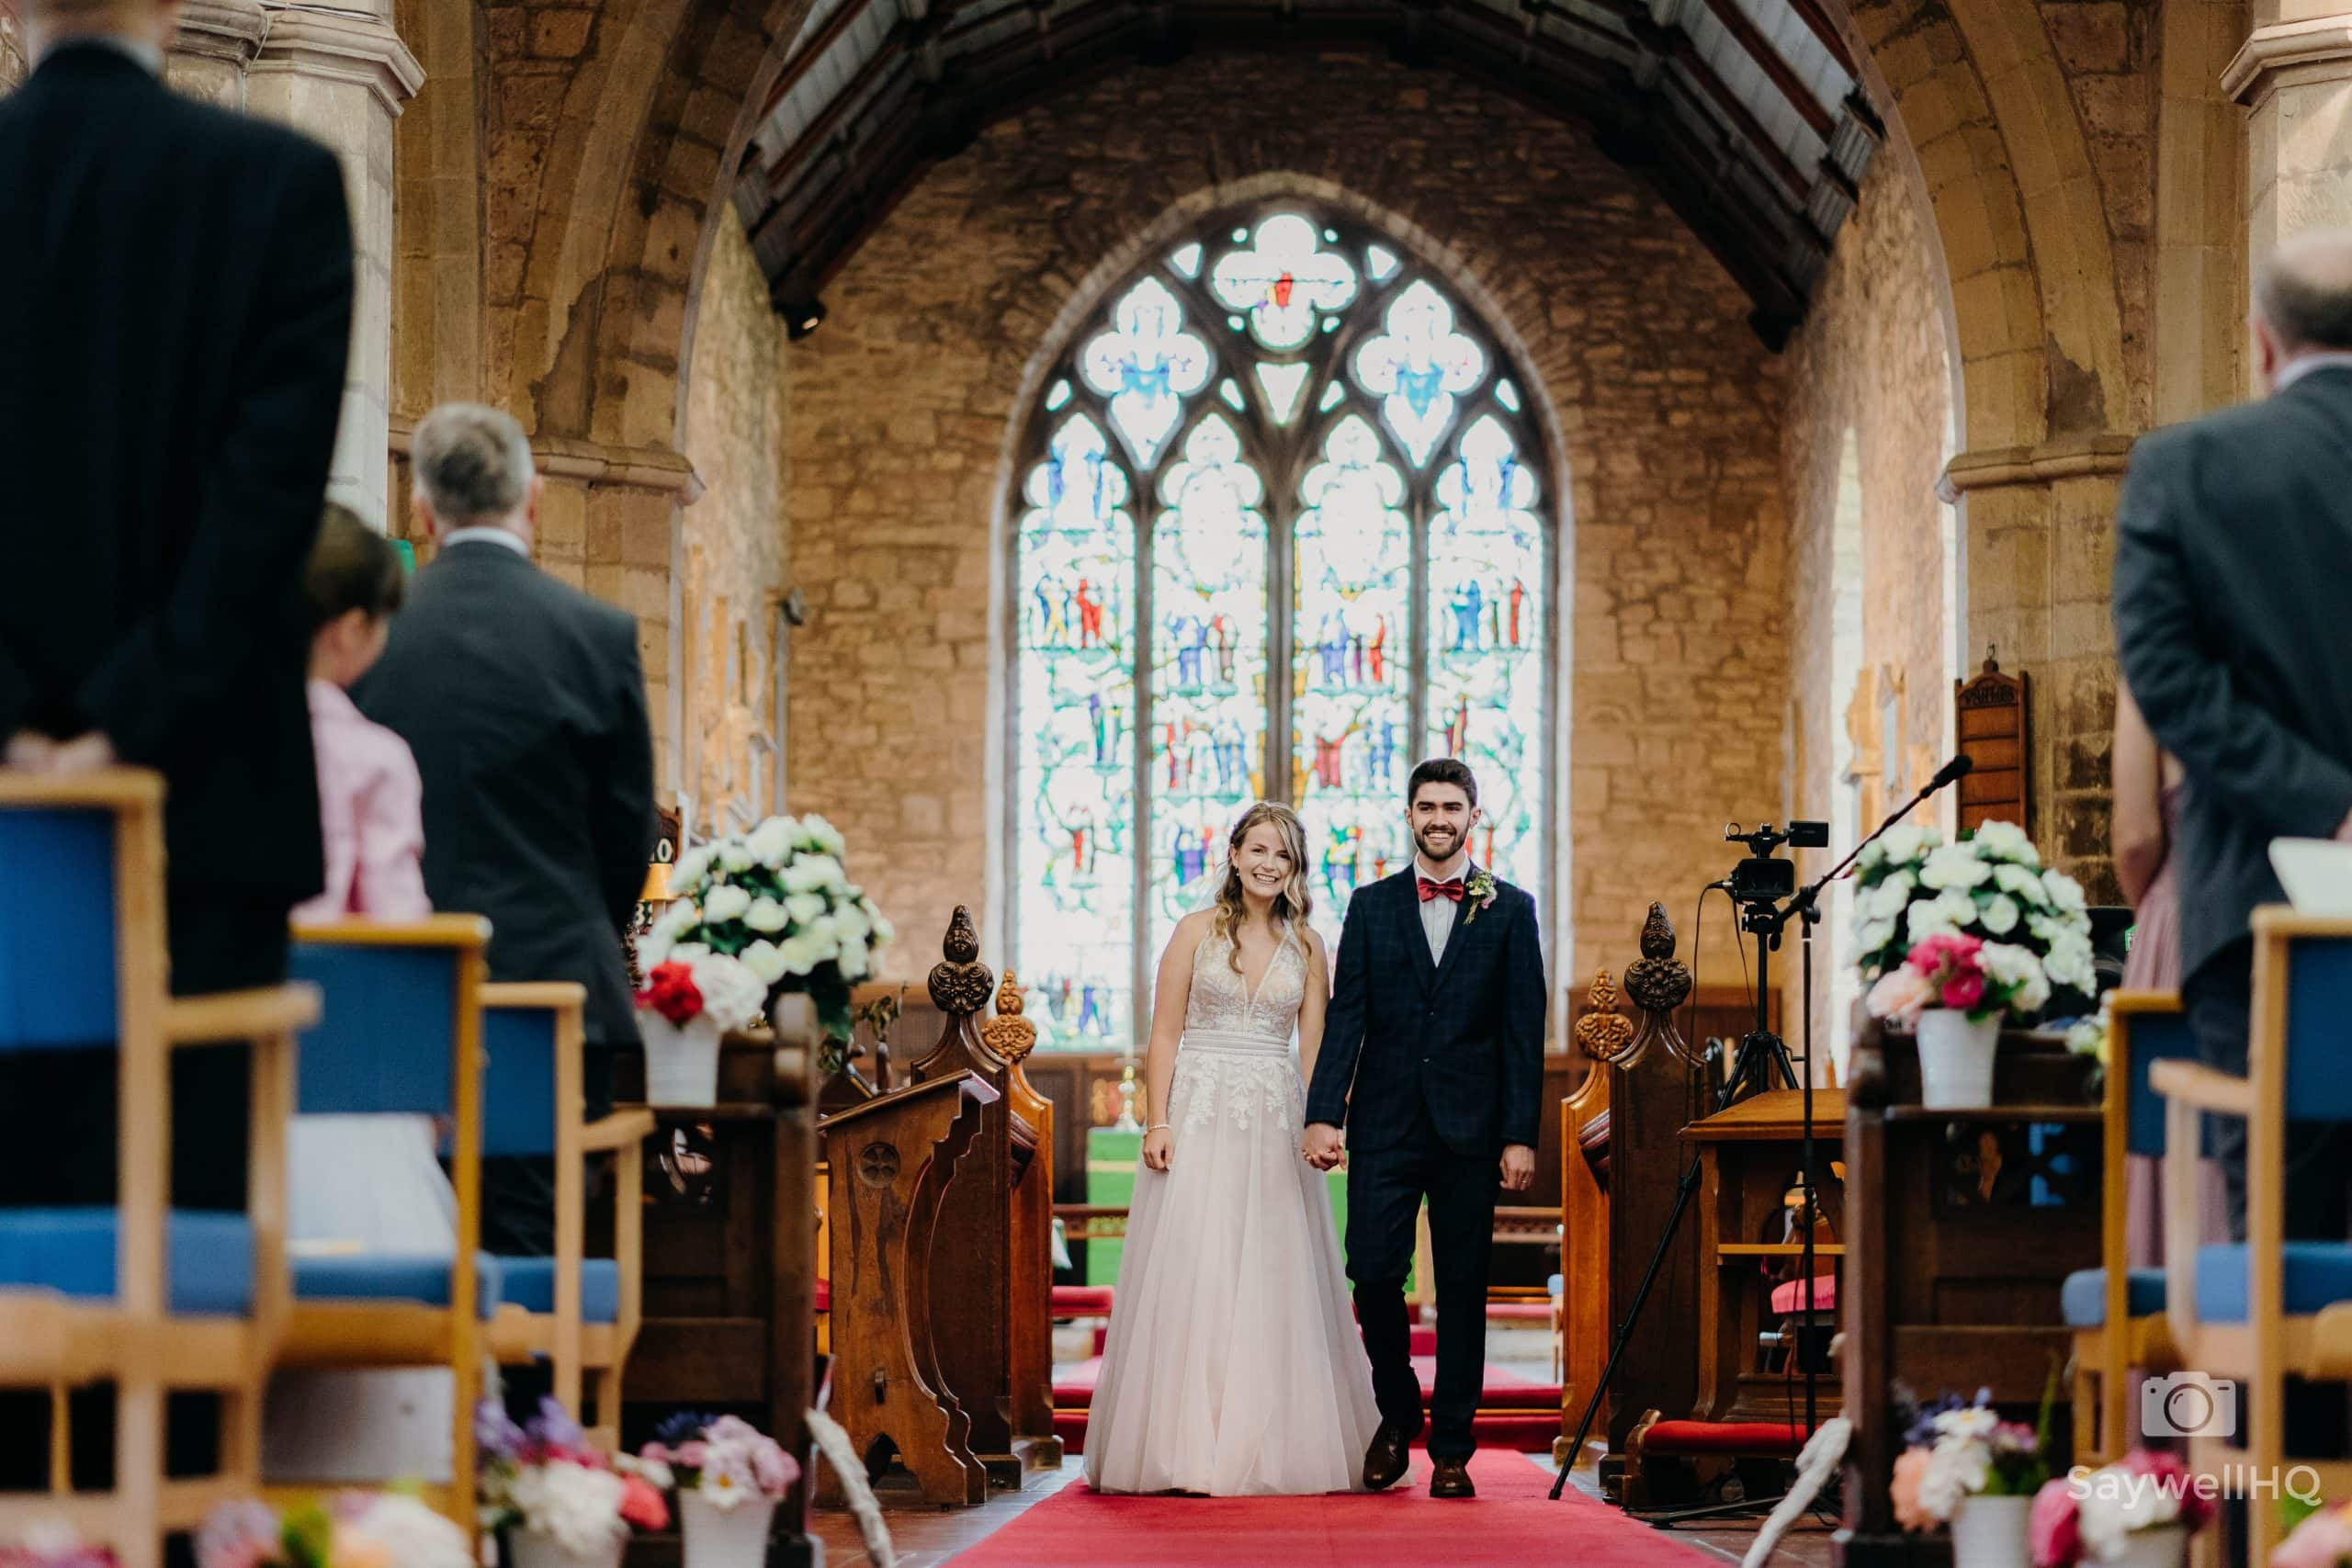 bride and groom walking down the aisle after getting married in a church wedding in Bromyard Herefordshire